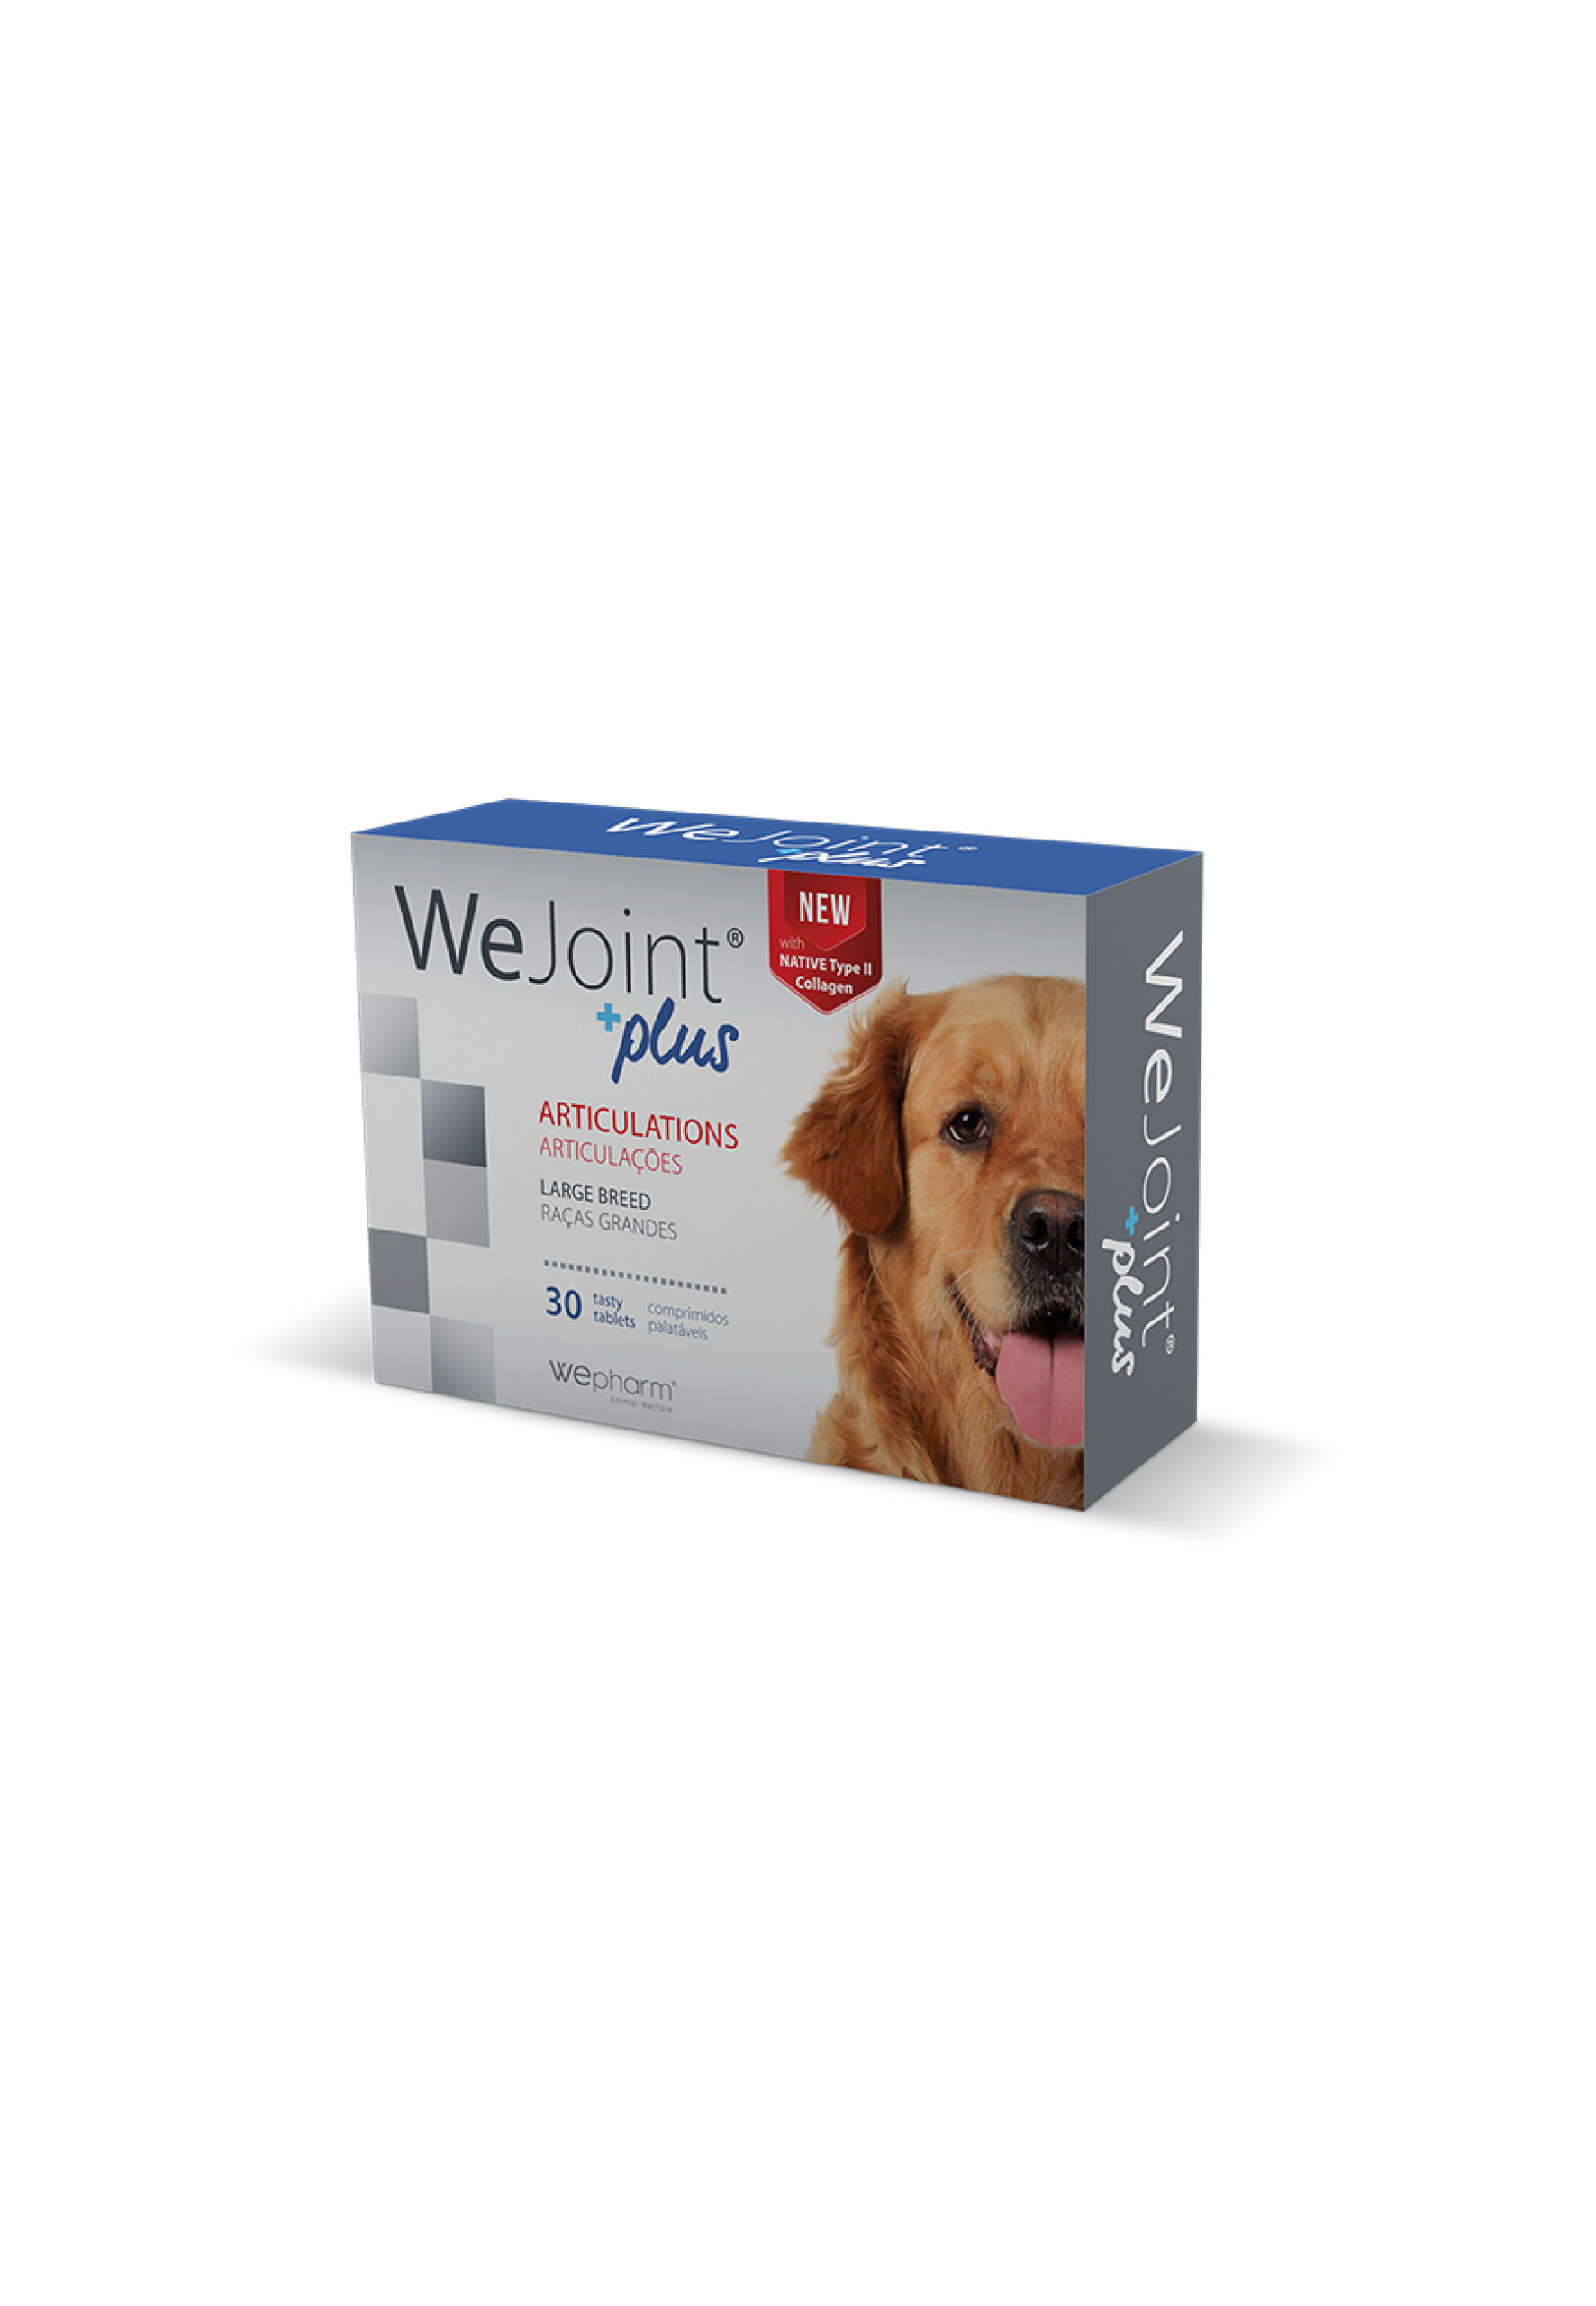 WeJoint Plus Large Breed